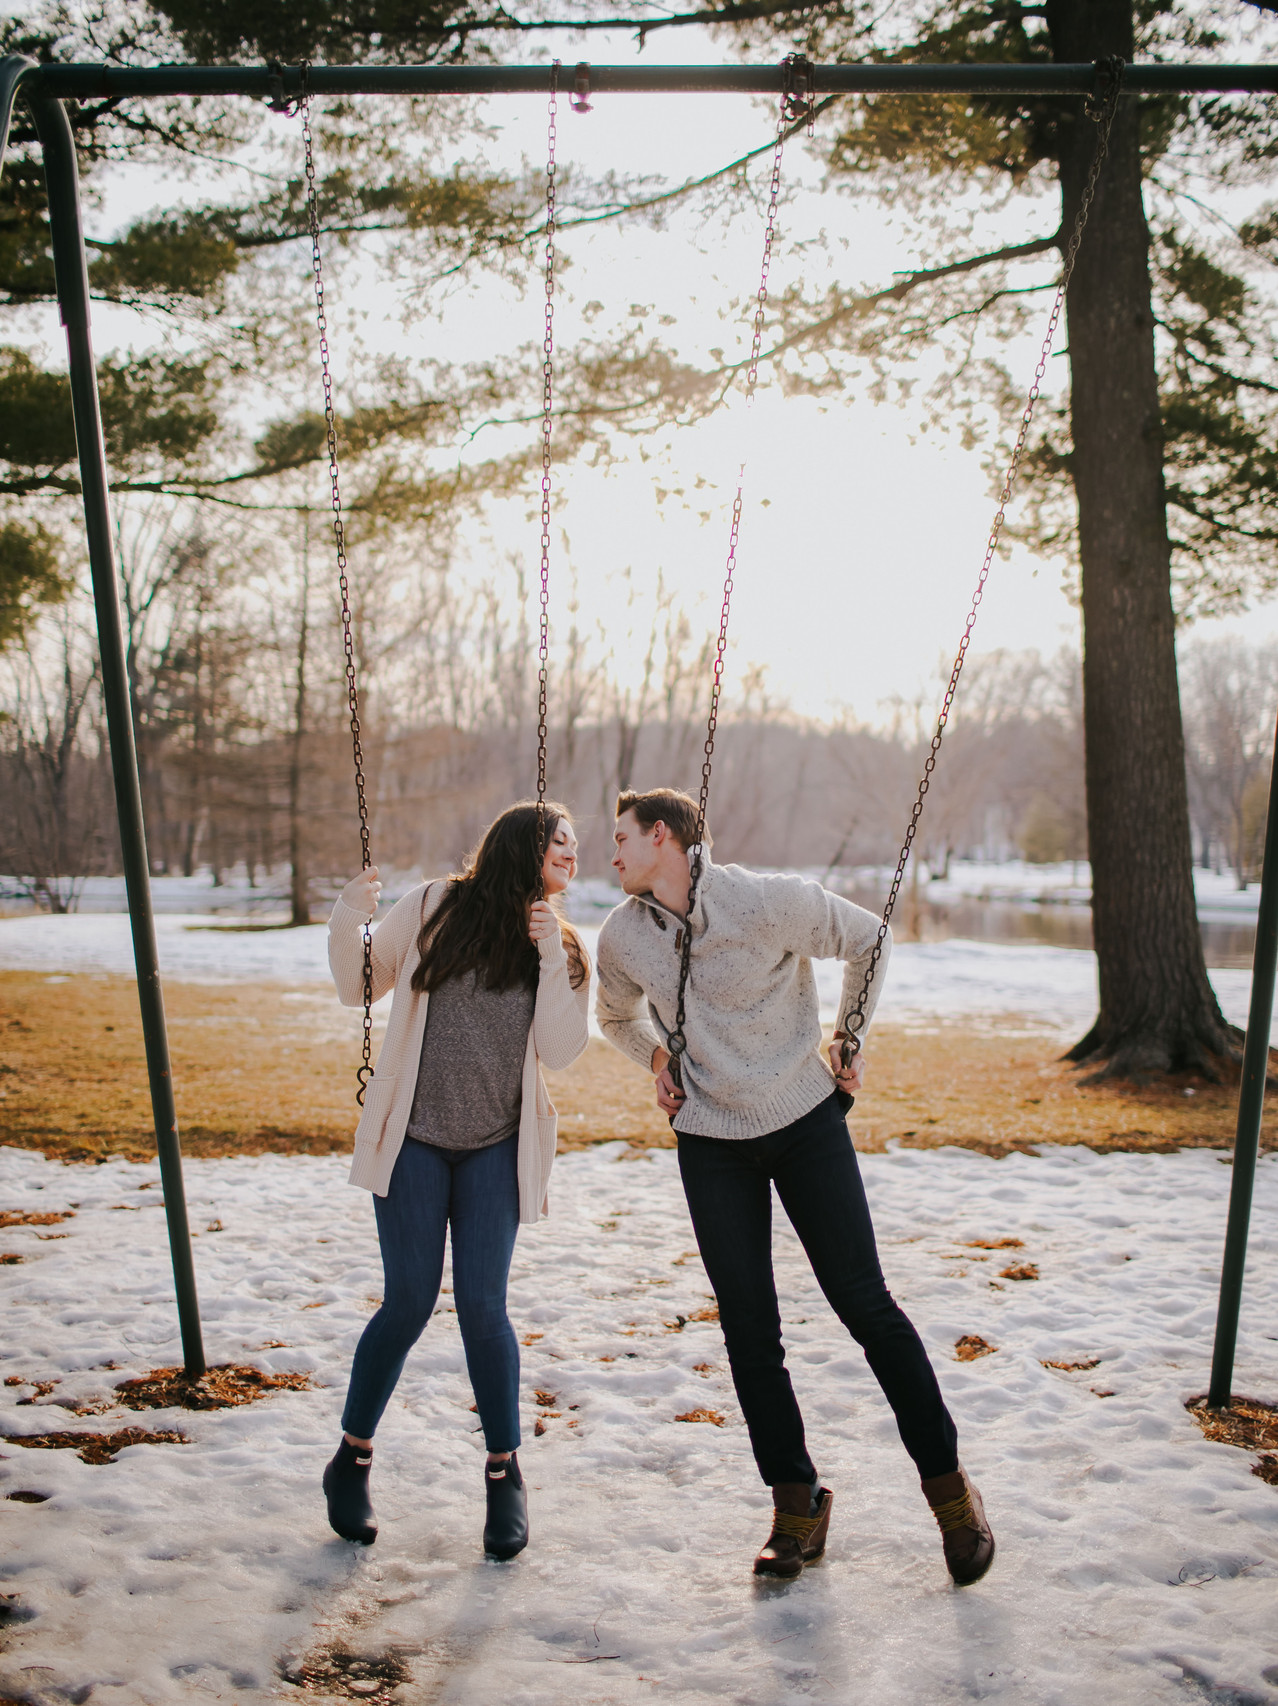 A couple swings on a play set - Central Wisconsin engagement photos